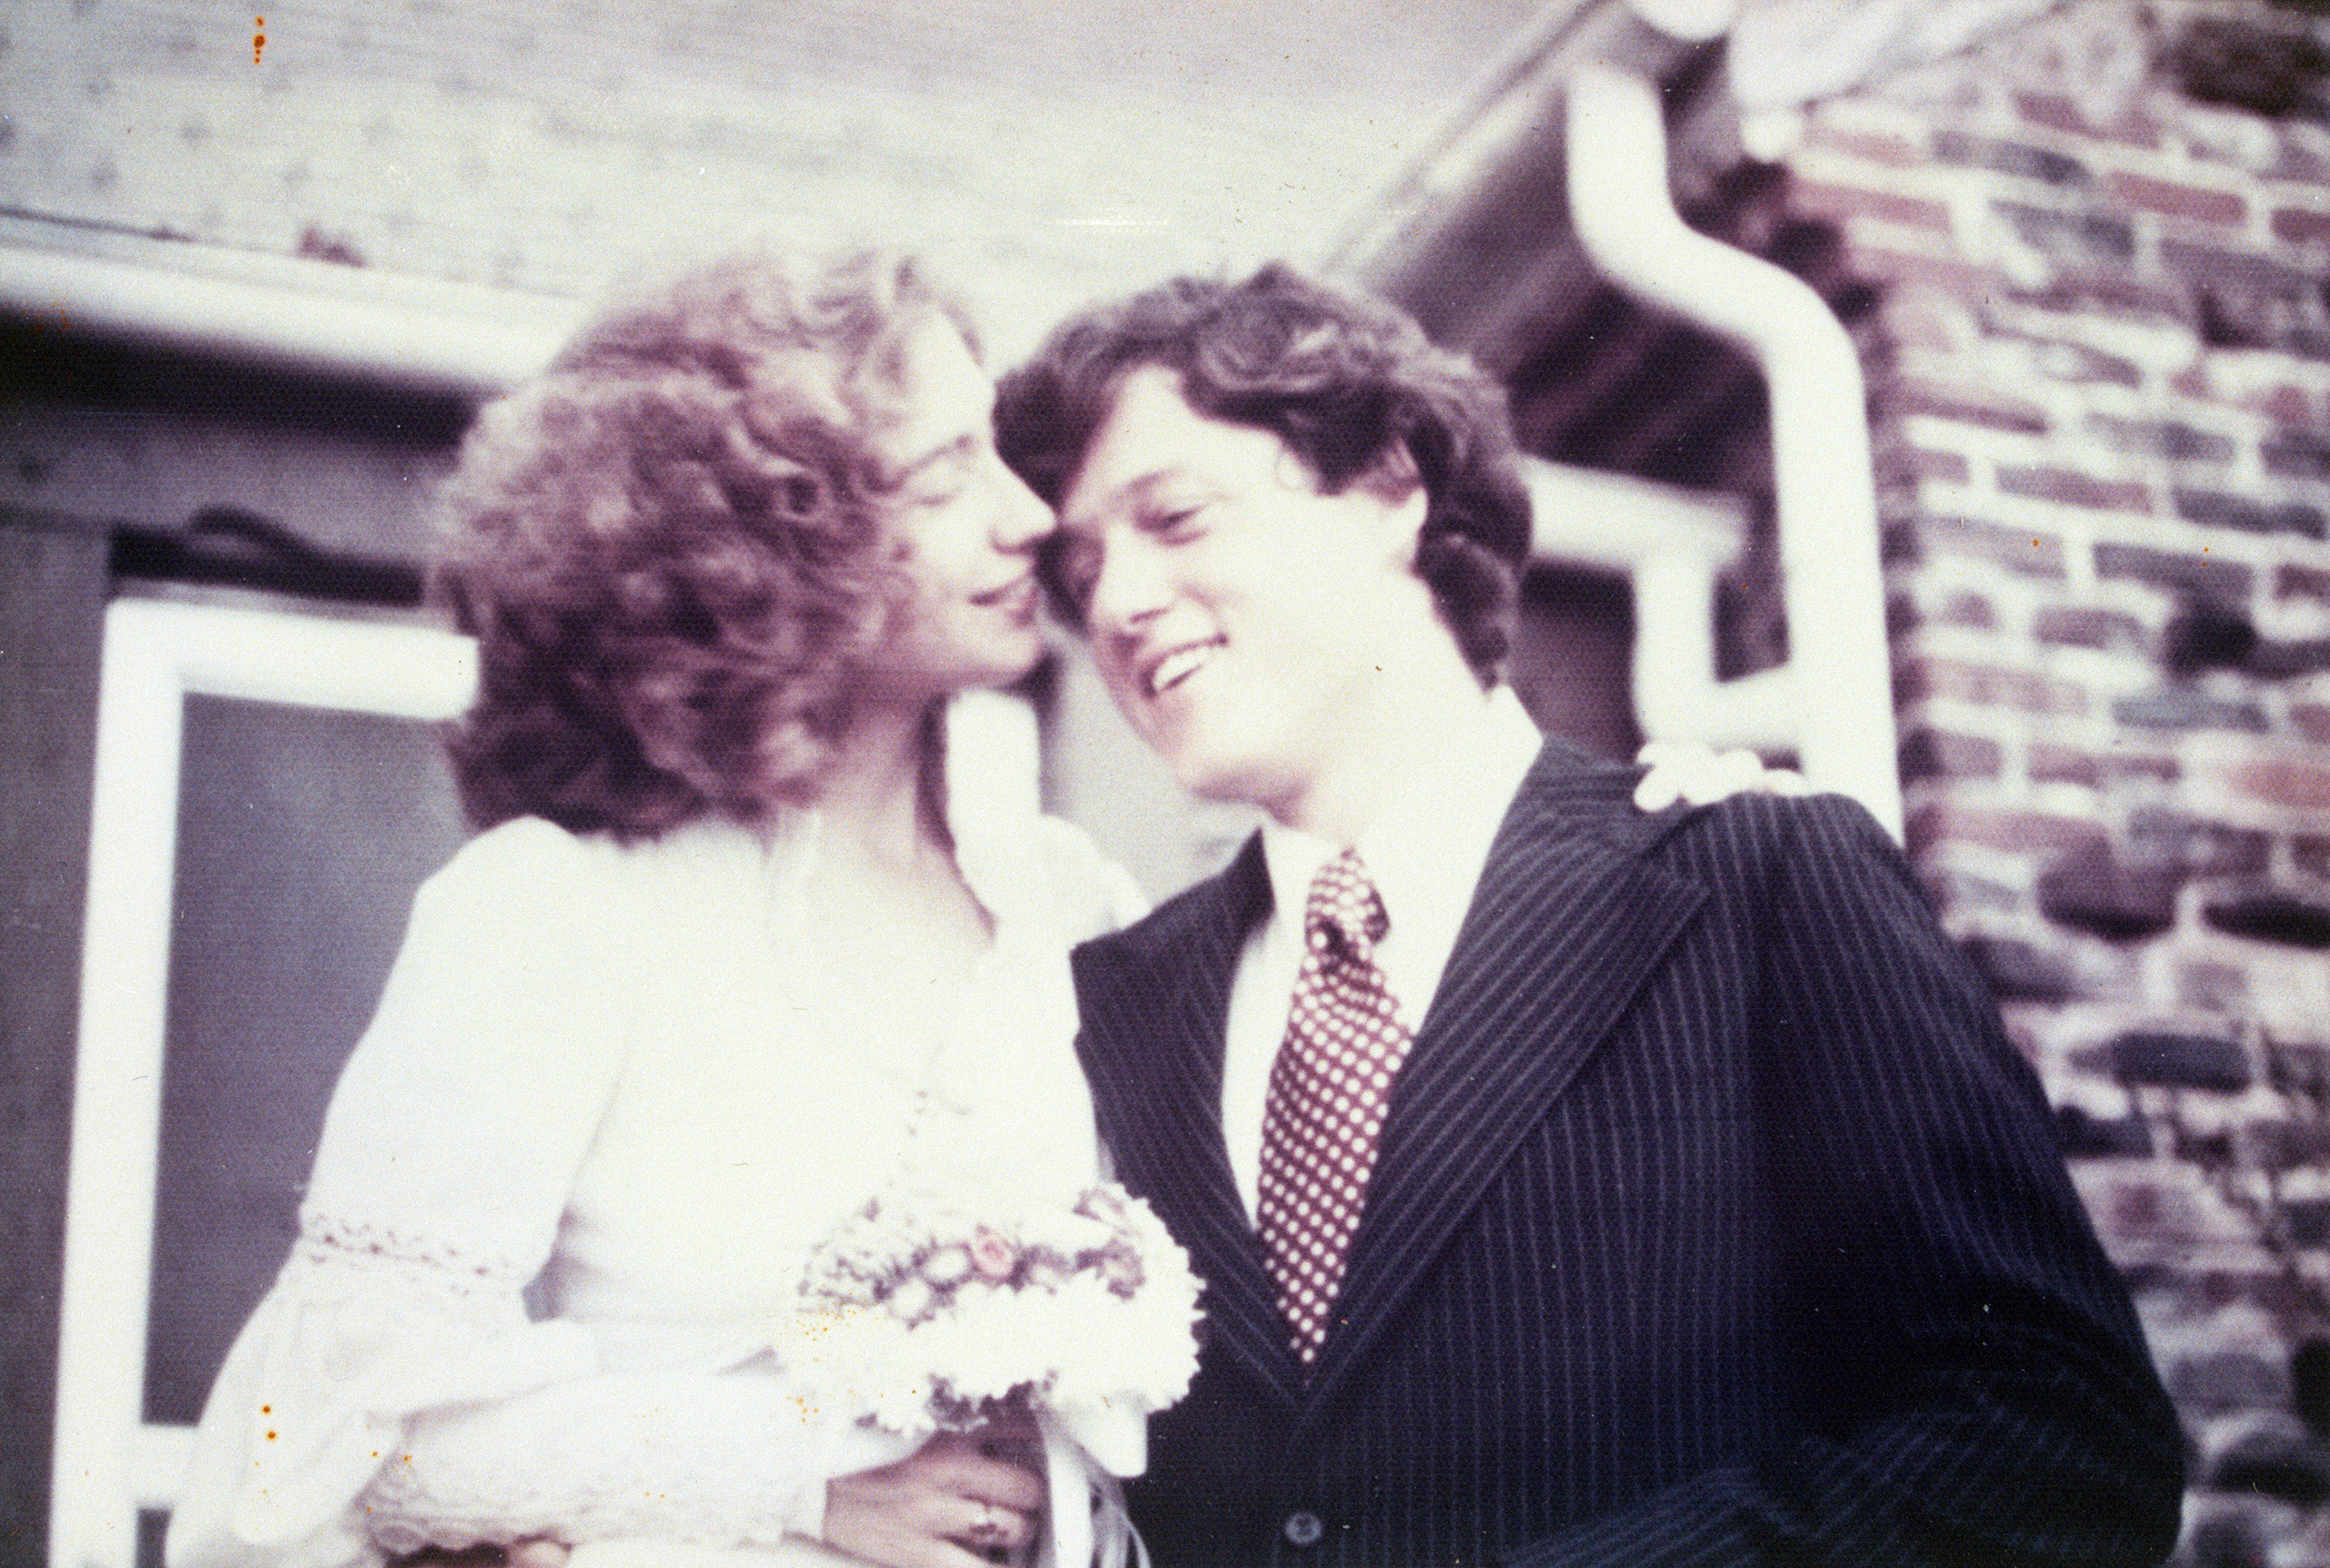 Hillary and Bill on their wedding day, October 11, 1975.